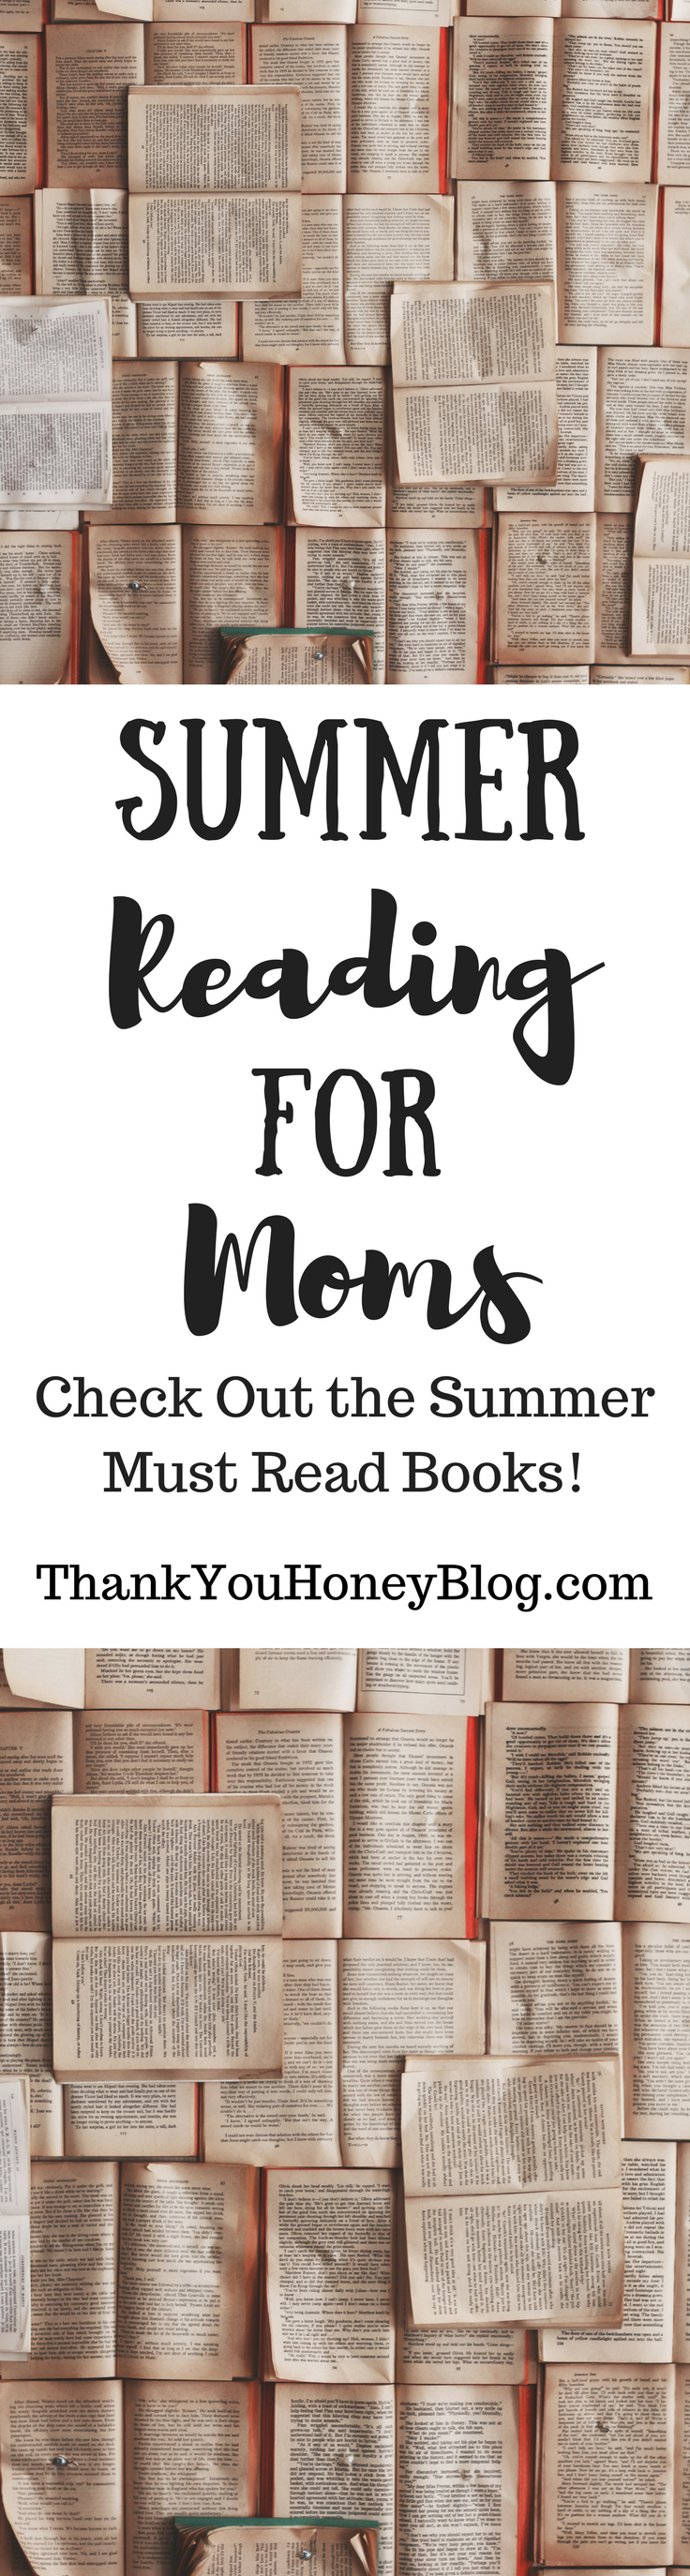 Summer Reading for Moms, Books, Novels, Fiction, Nonfiction, Poetry, Reading, Read, Summer, Reading for Moms, Must Read, Humor, Vacation Reading, Summer Reading, Vacation, ThankYouHoneyBlog.com